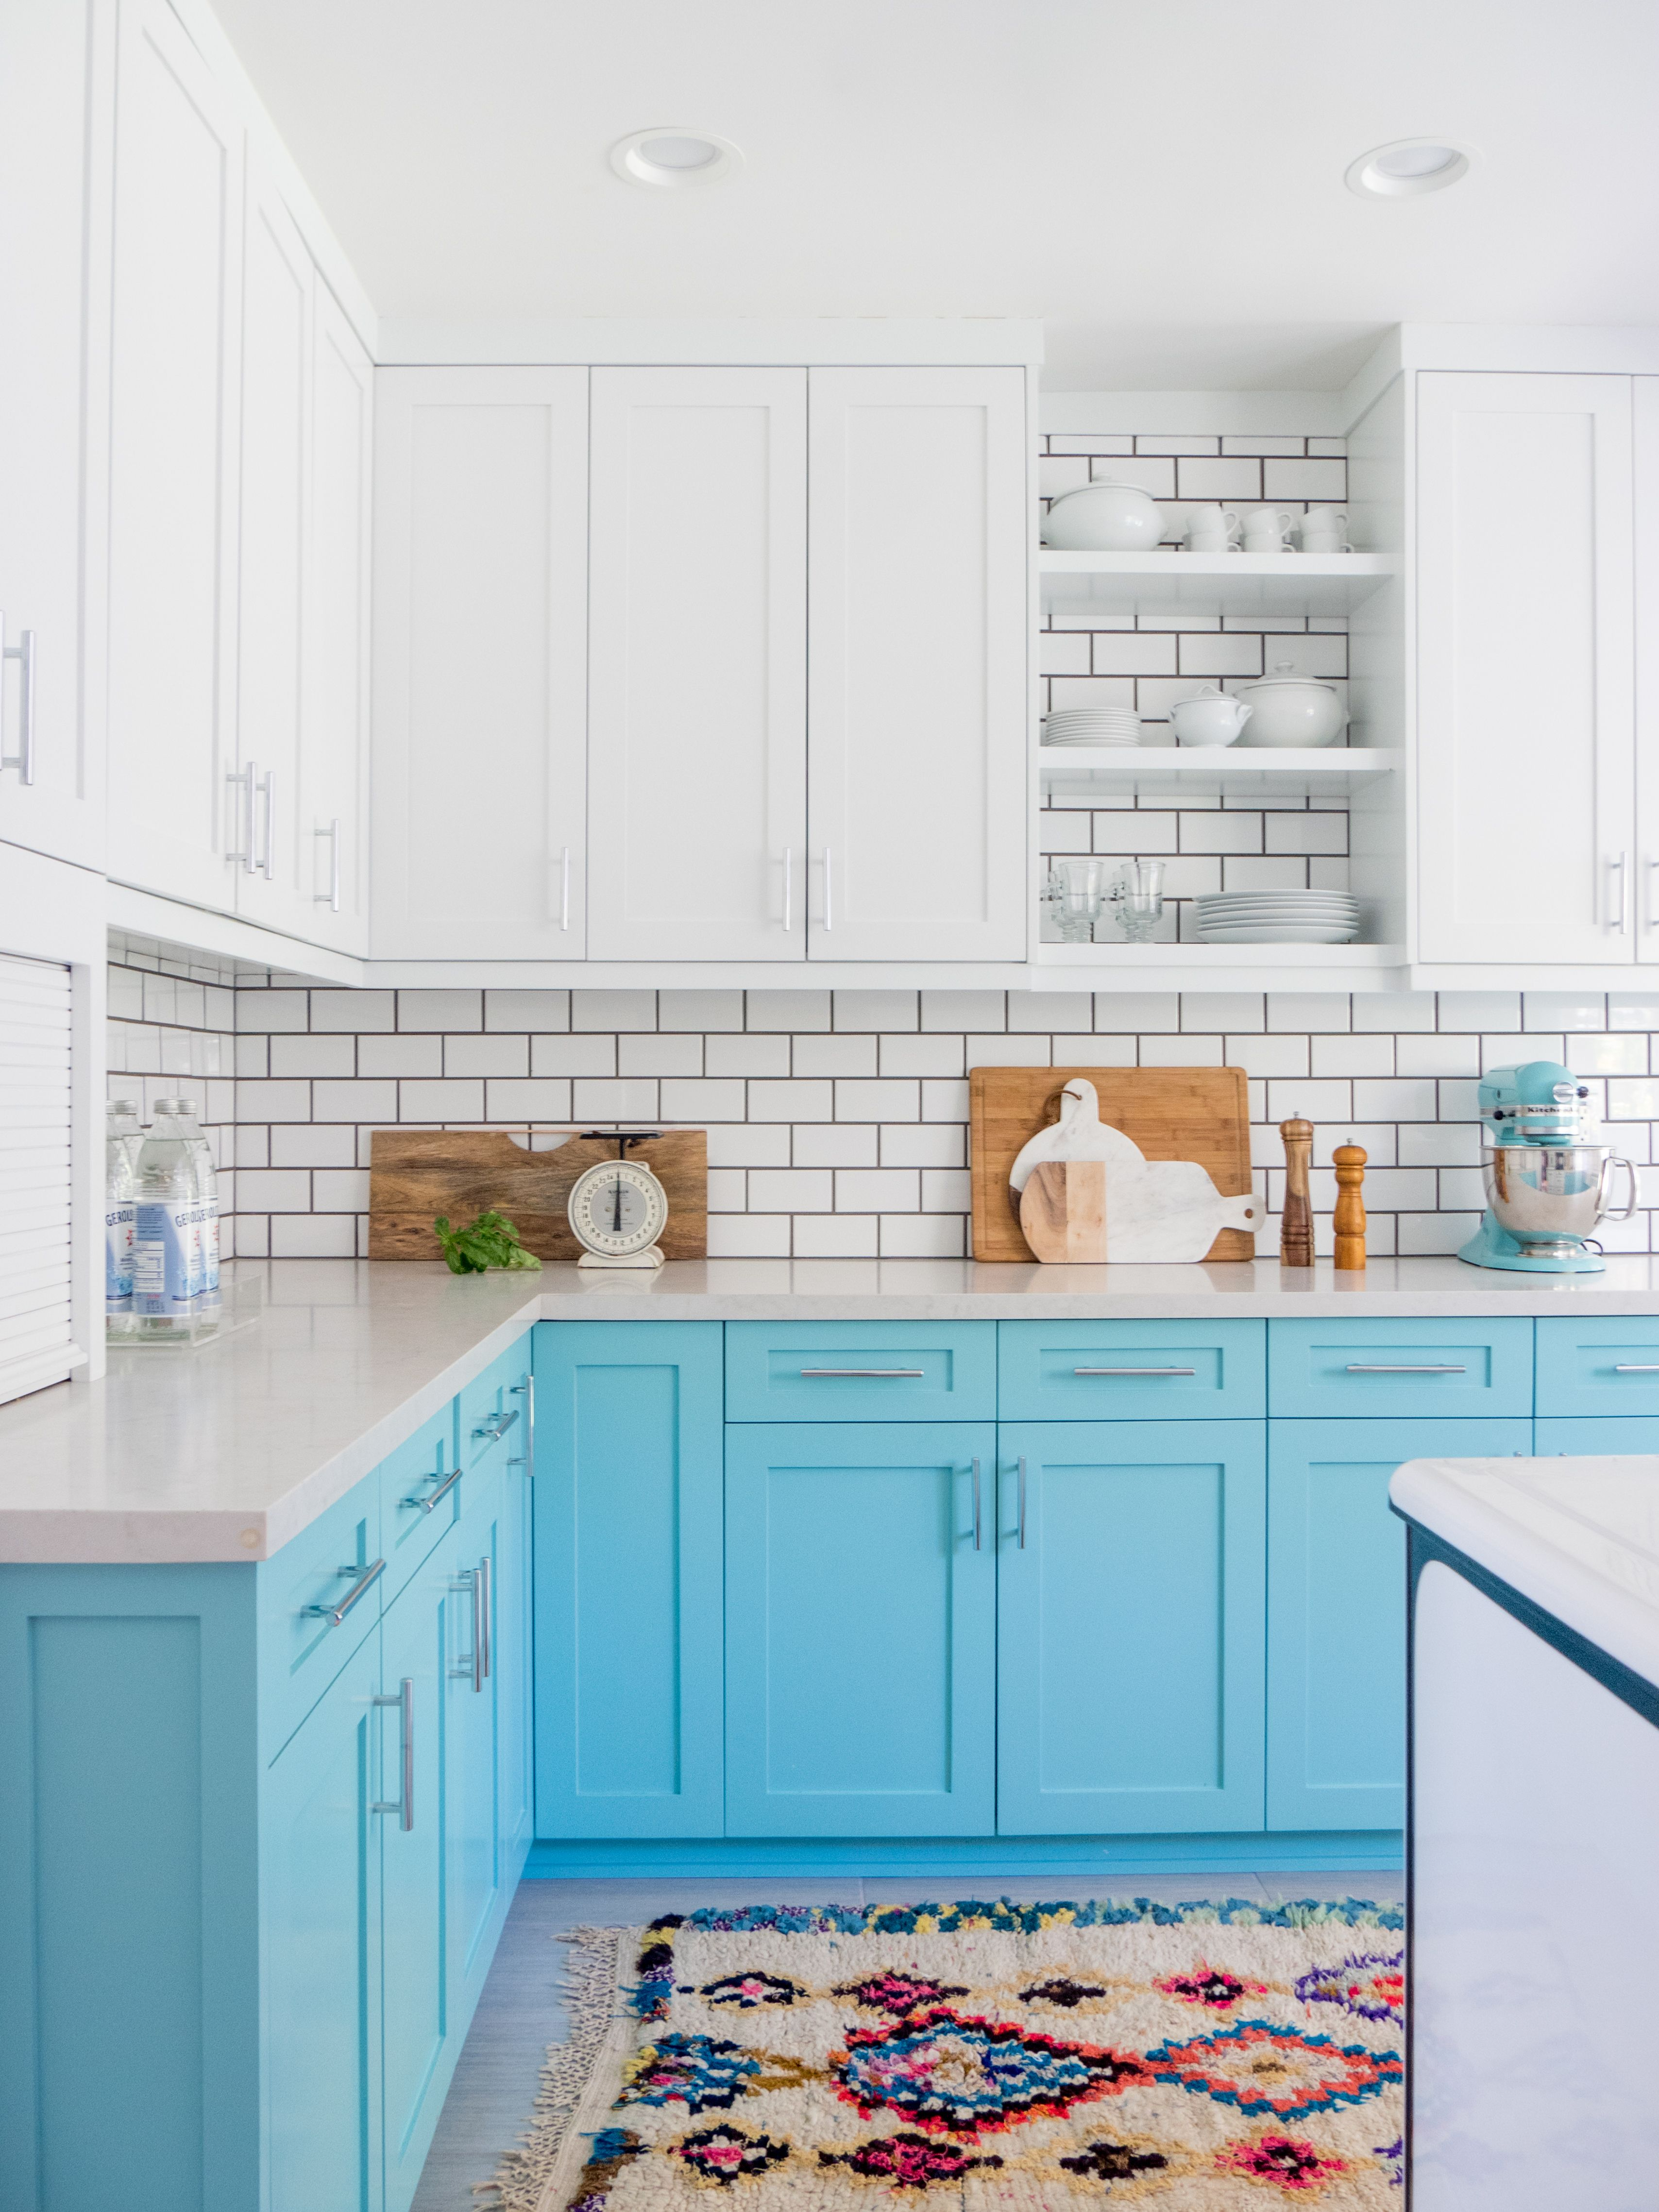 Before And After A 1920s Kitchen Makeover Domino Kitchen Interior Kitchen Inspirations Painted Kitchen Cabinets Colors